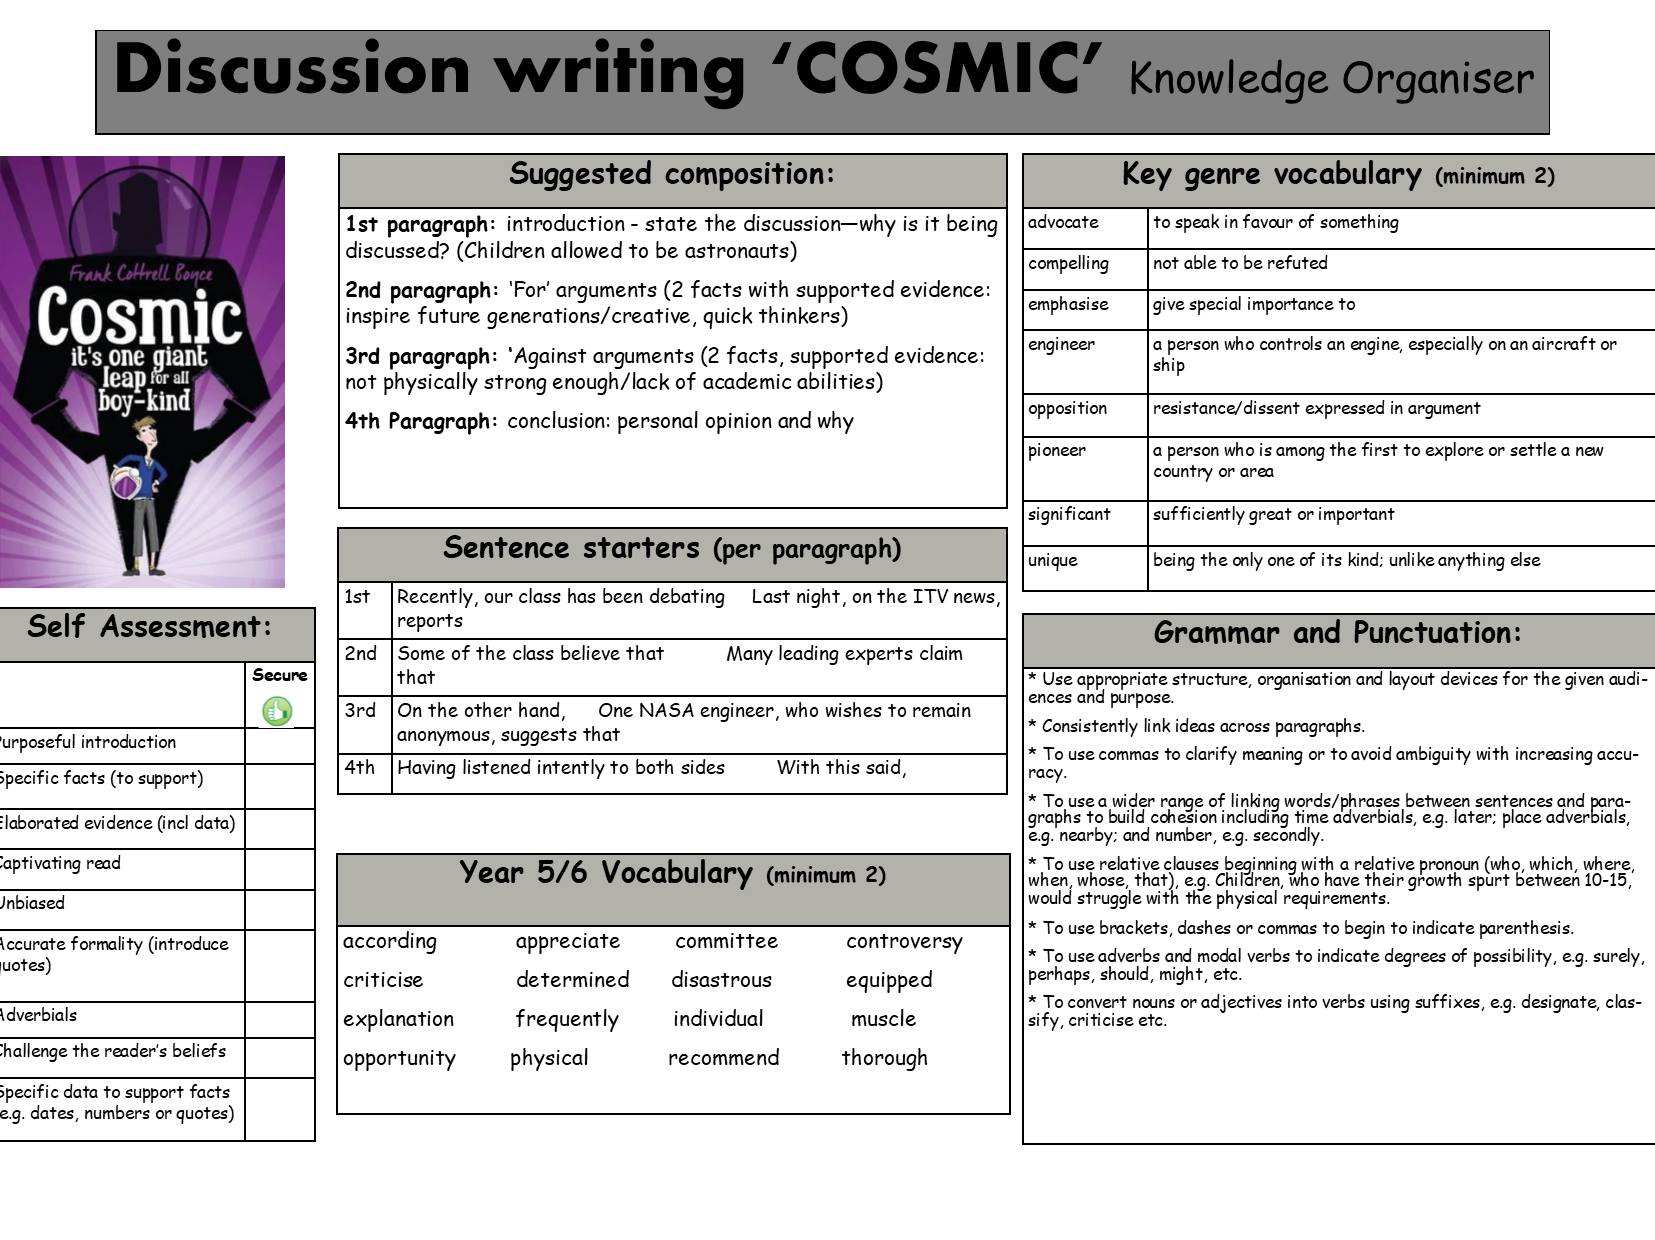 Discussion Knowledge Organiser based on Cosmic